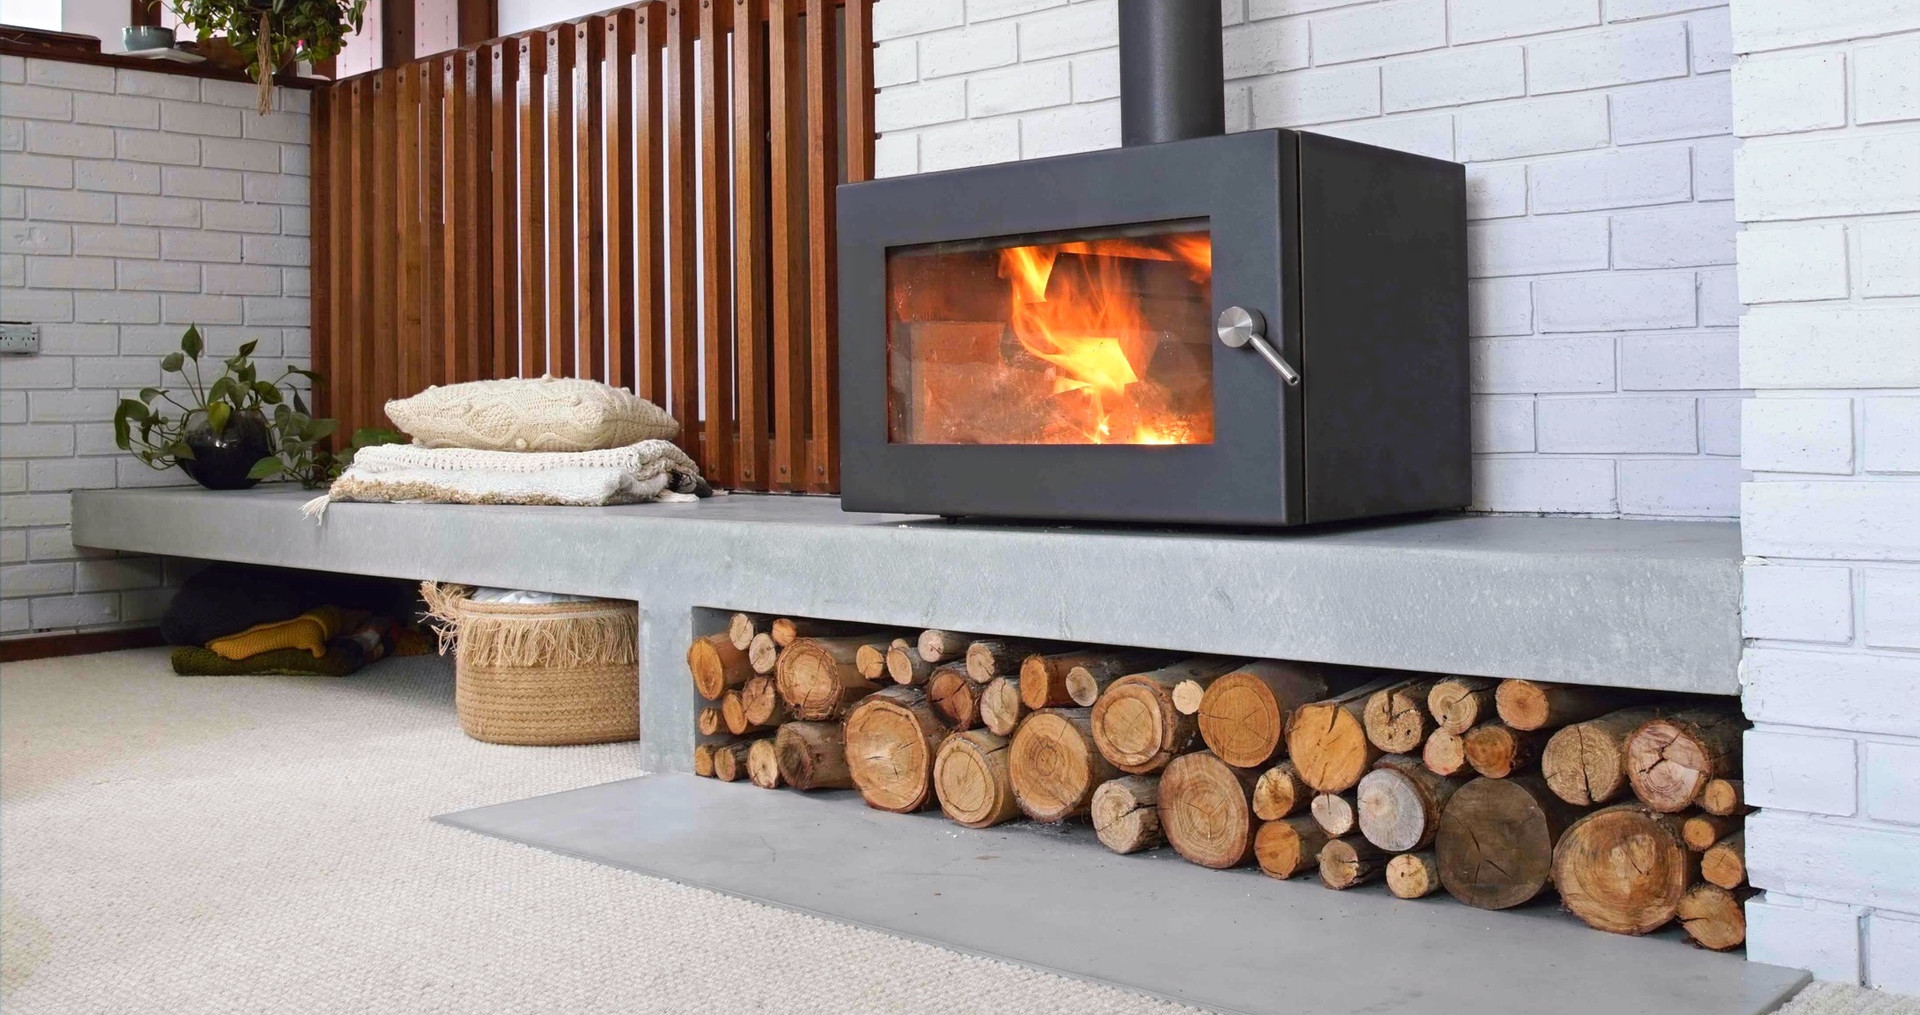 Cast In-Situ Fire Hearth and Concrete Floor Tile - Geelong